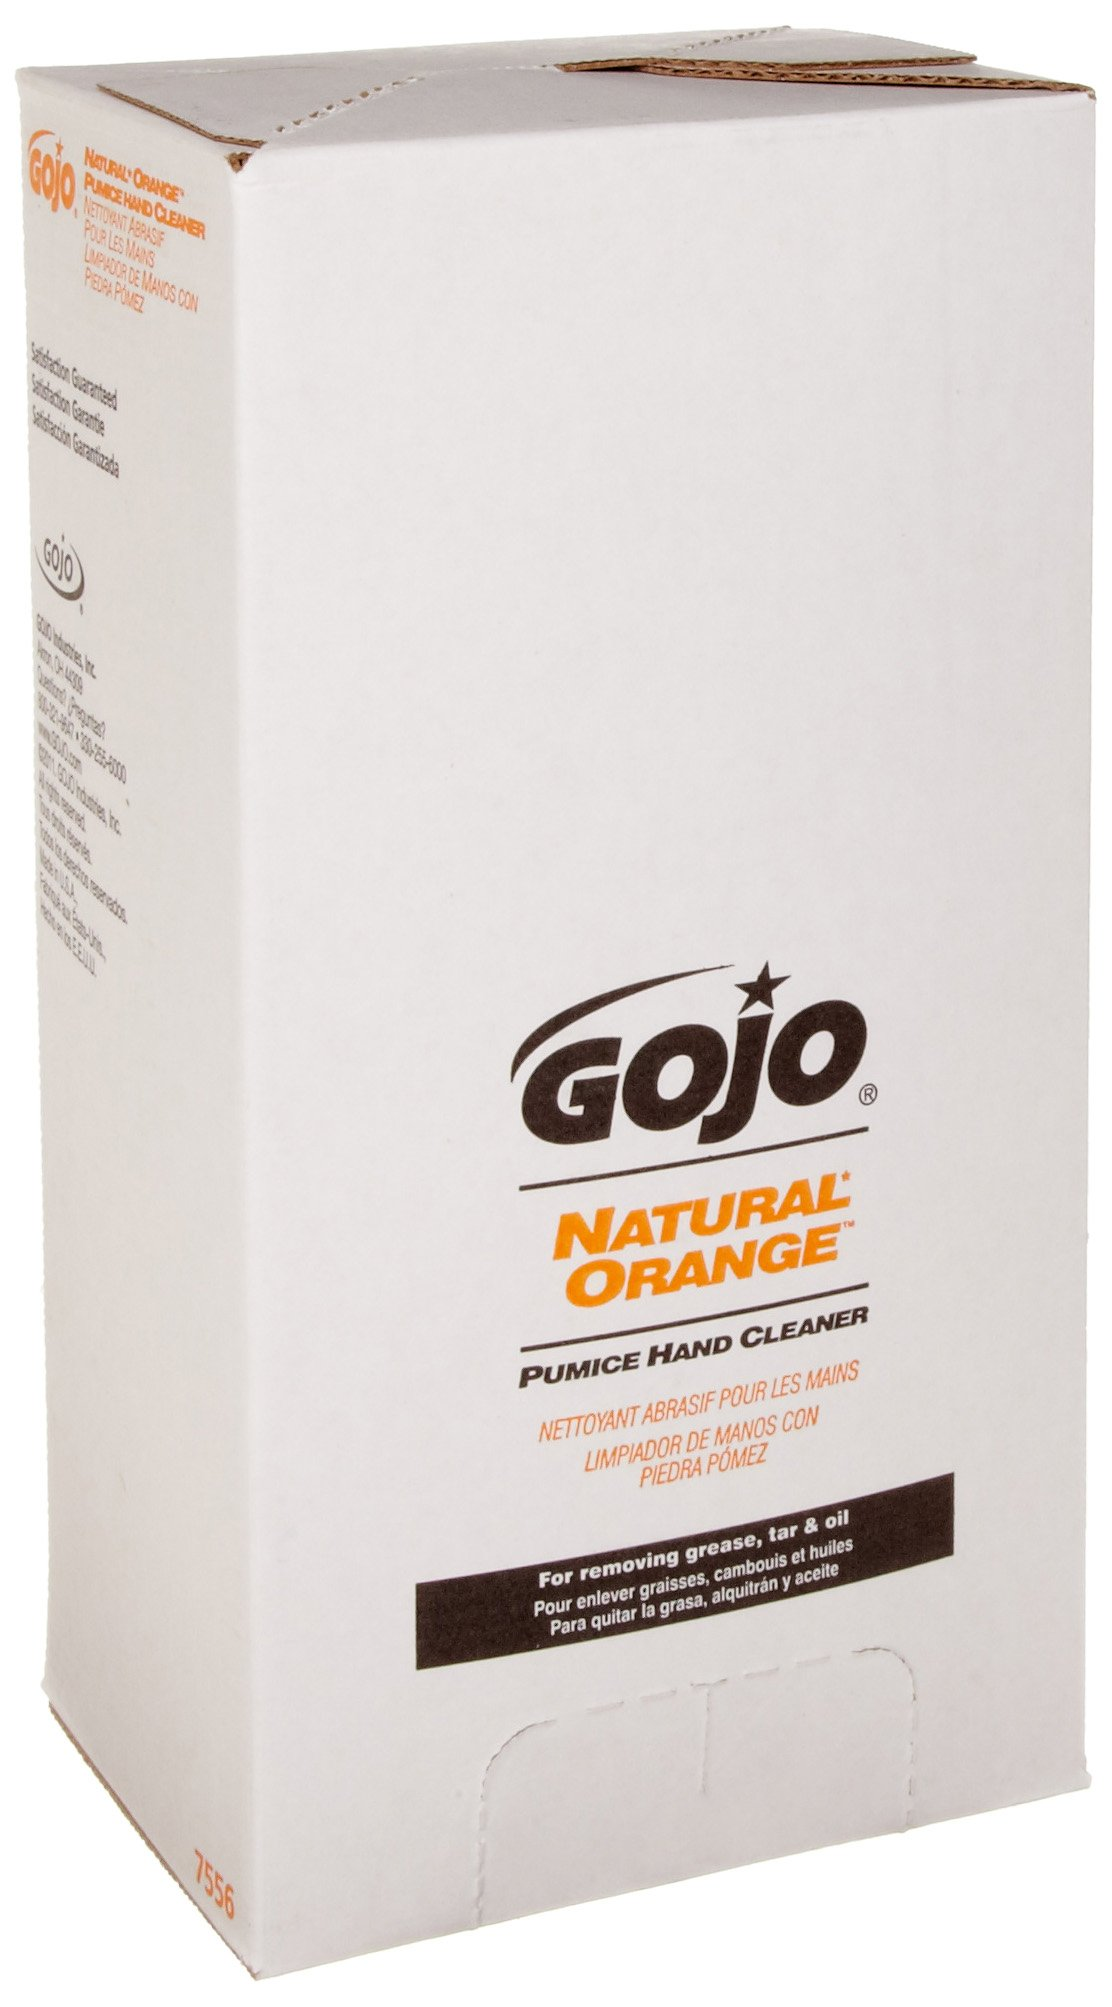 GOJO NATURAL ORANGE Pumice Industrial Hand Cleaner, 5000 mL Quick Acting Lotion Hand Cleaner Refill for GOJO PRO TDX Dispenser (Pack of 2) - 7556-02 by Gojo (Image #1)